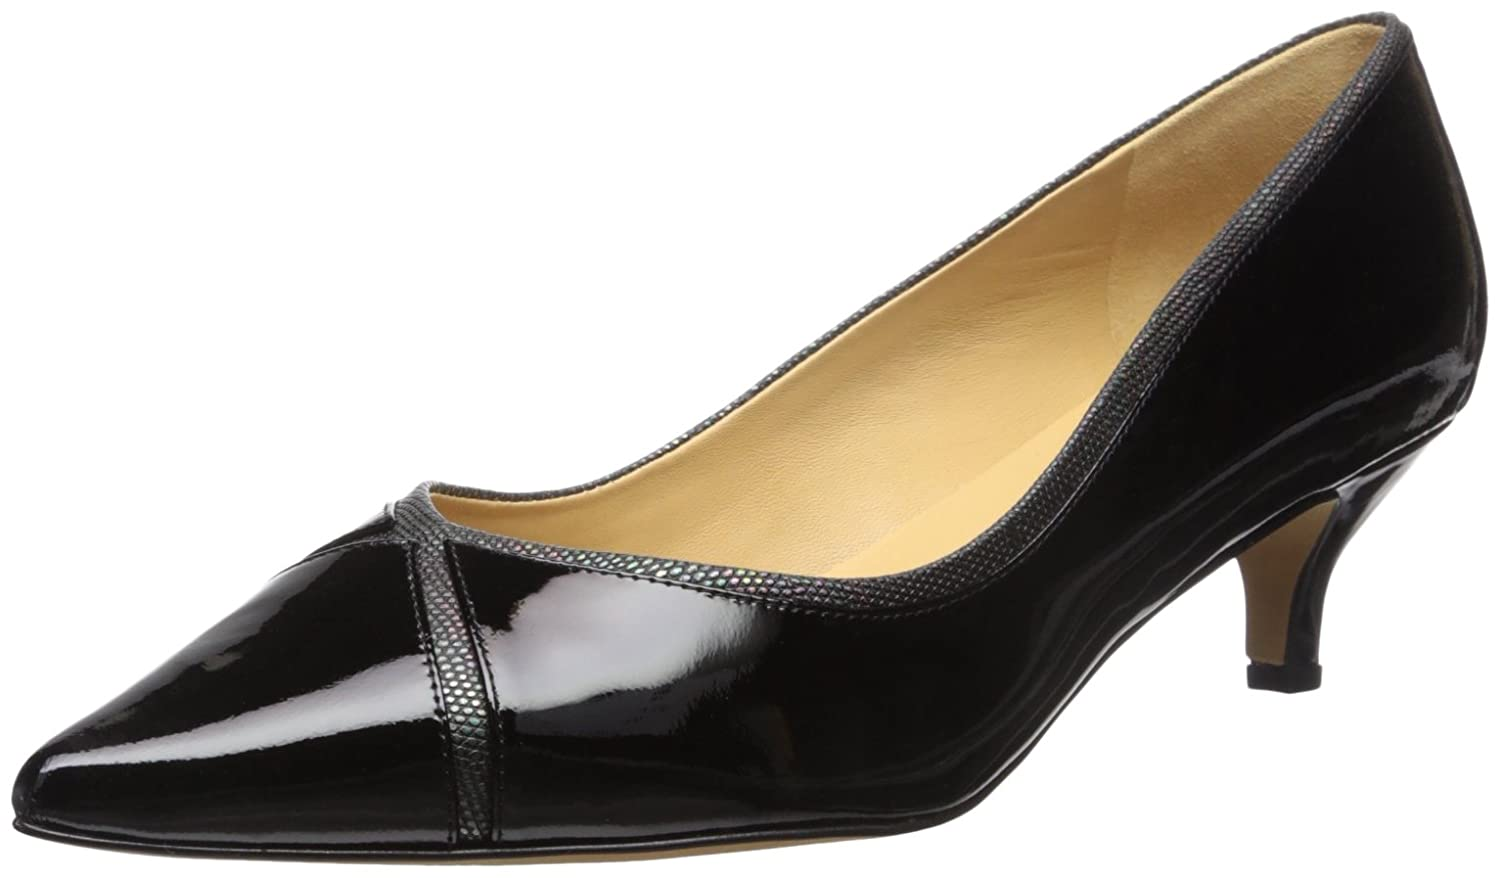 Trotters Women's Kelsey Dress Pump B019R21FZA 6.5 N US|Black Combo